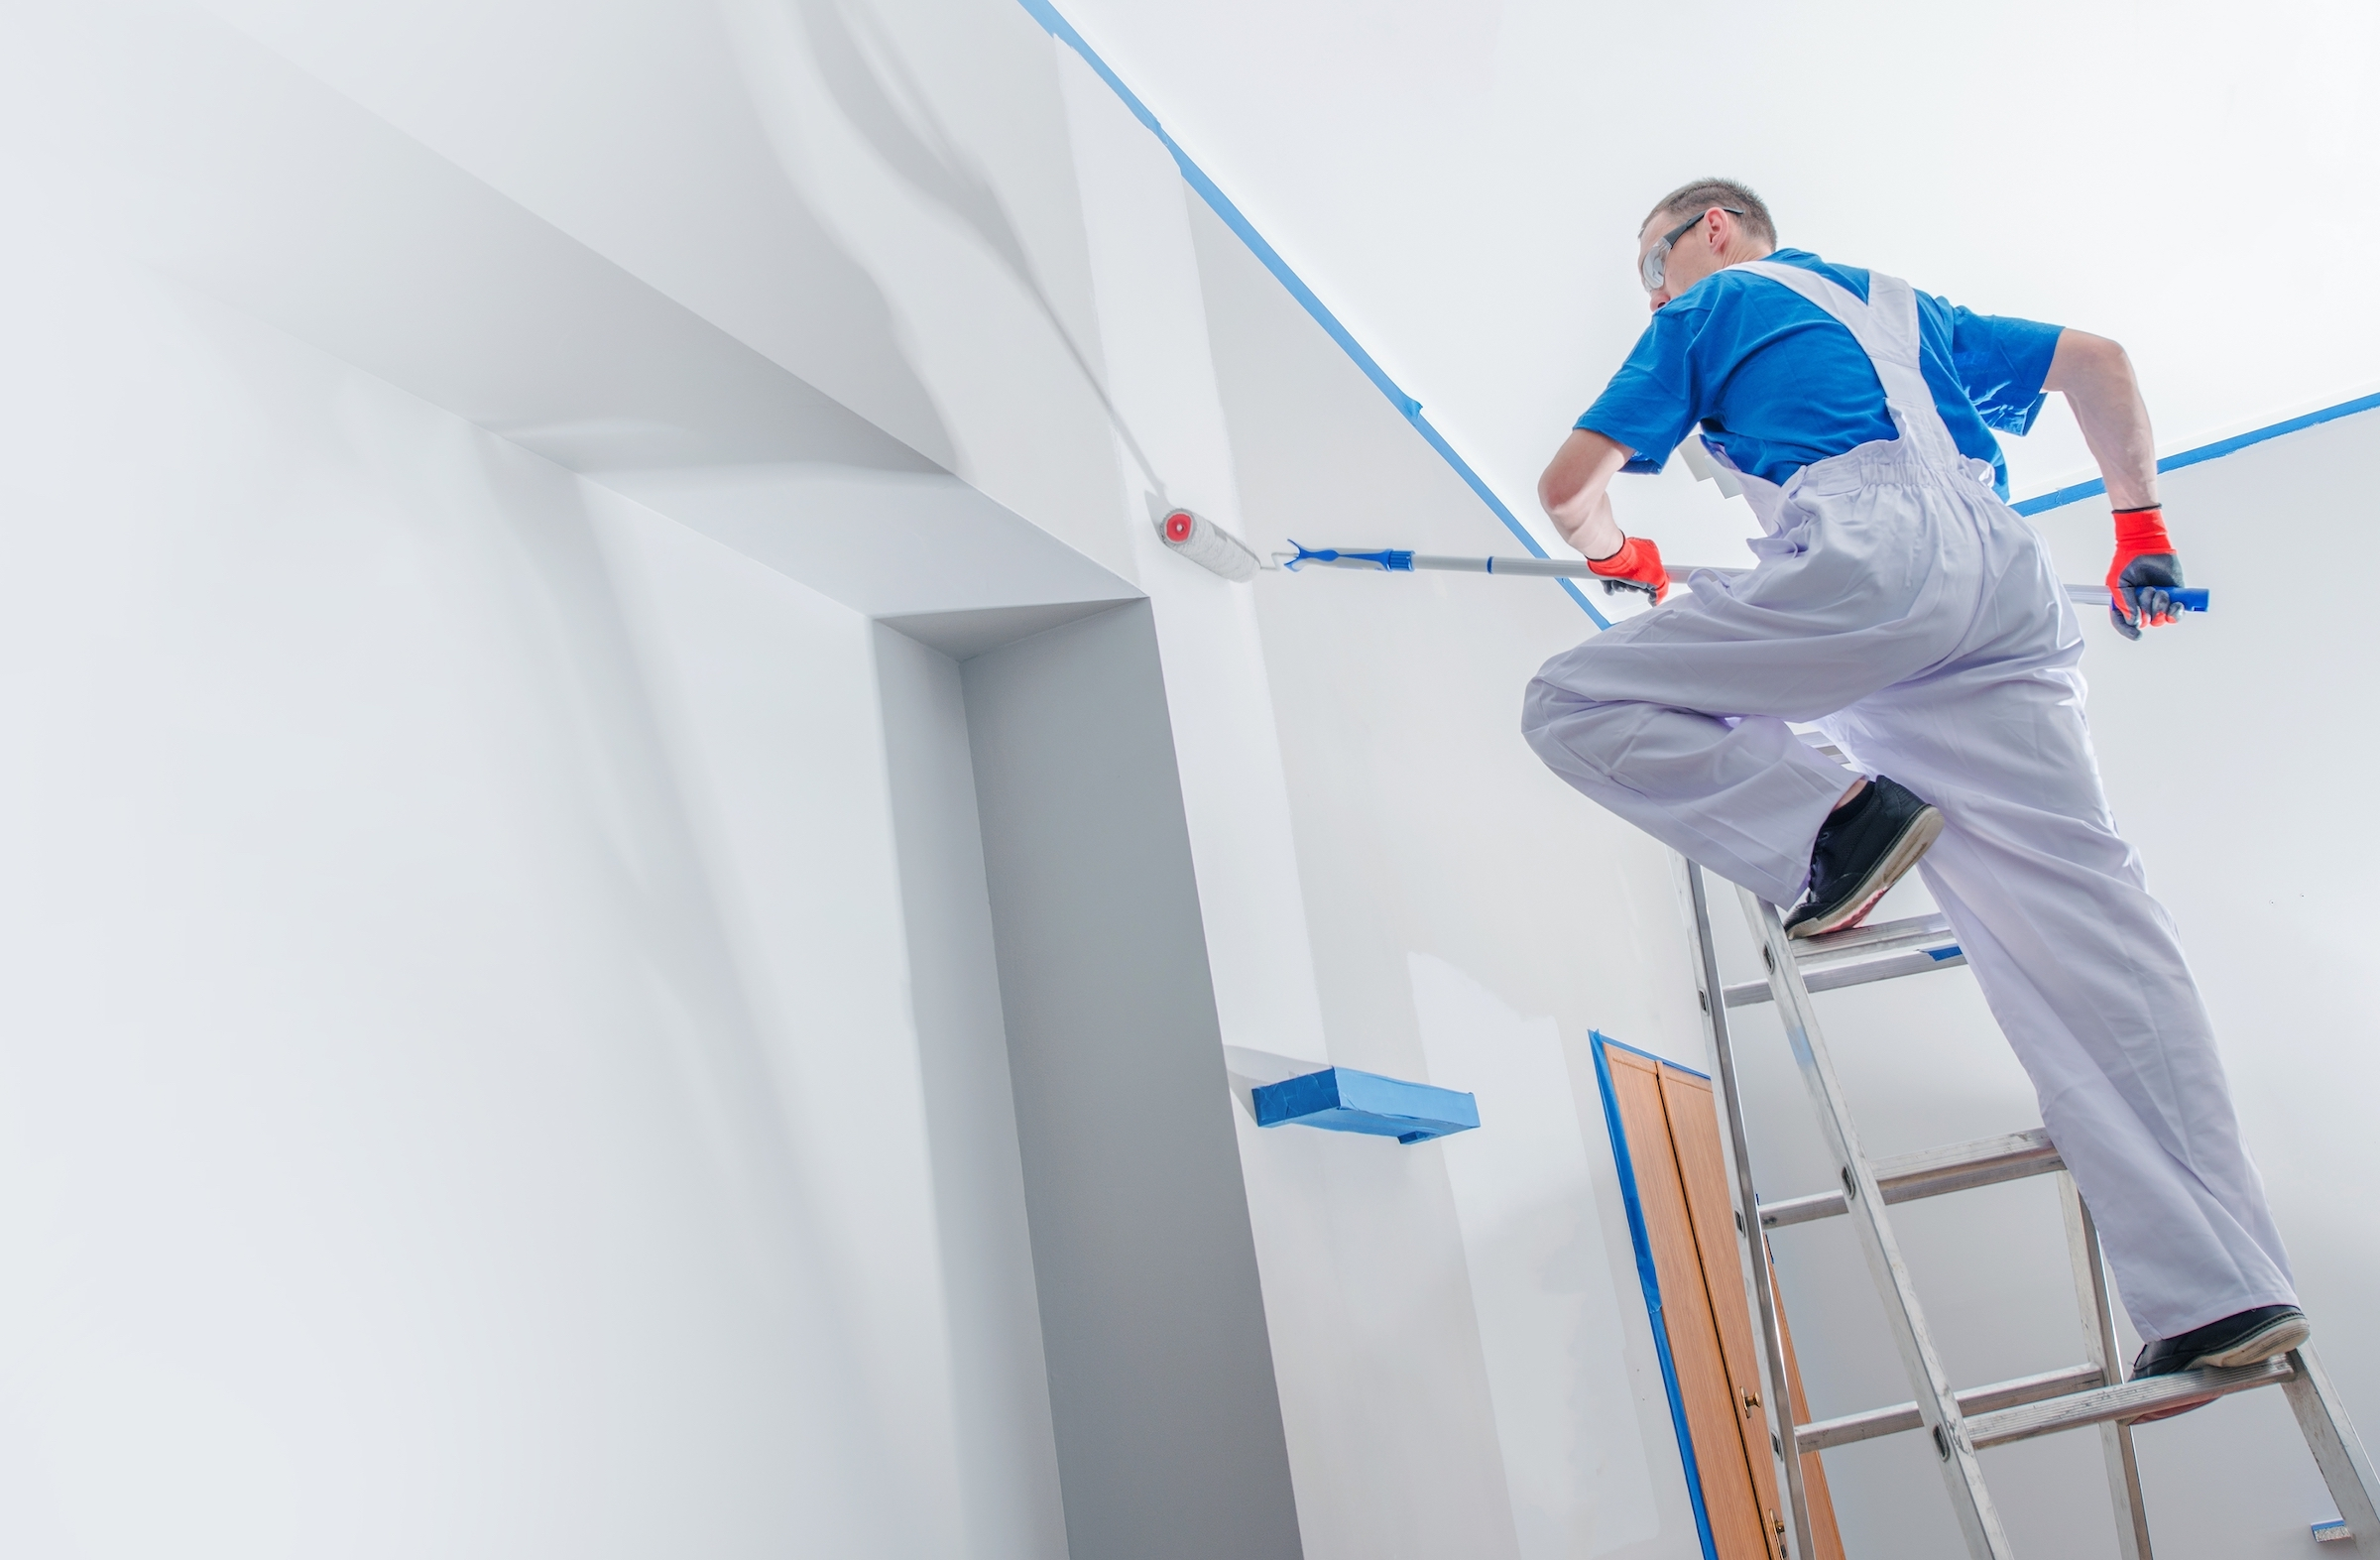 How to find professional painters near me.